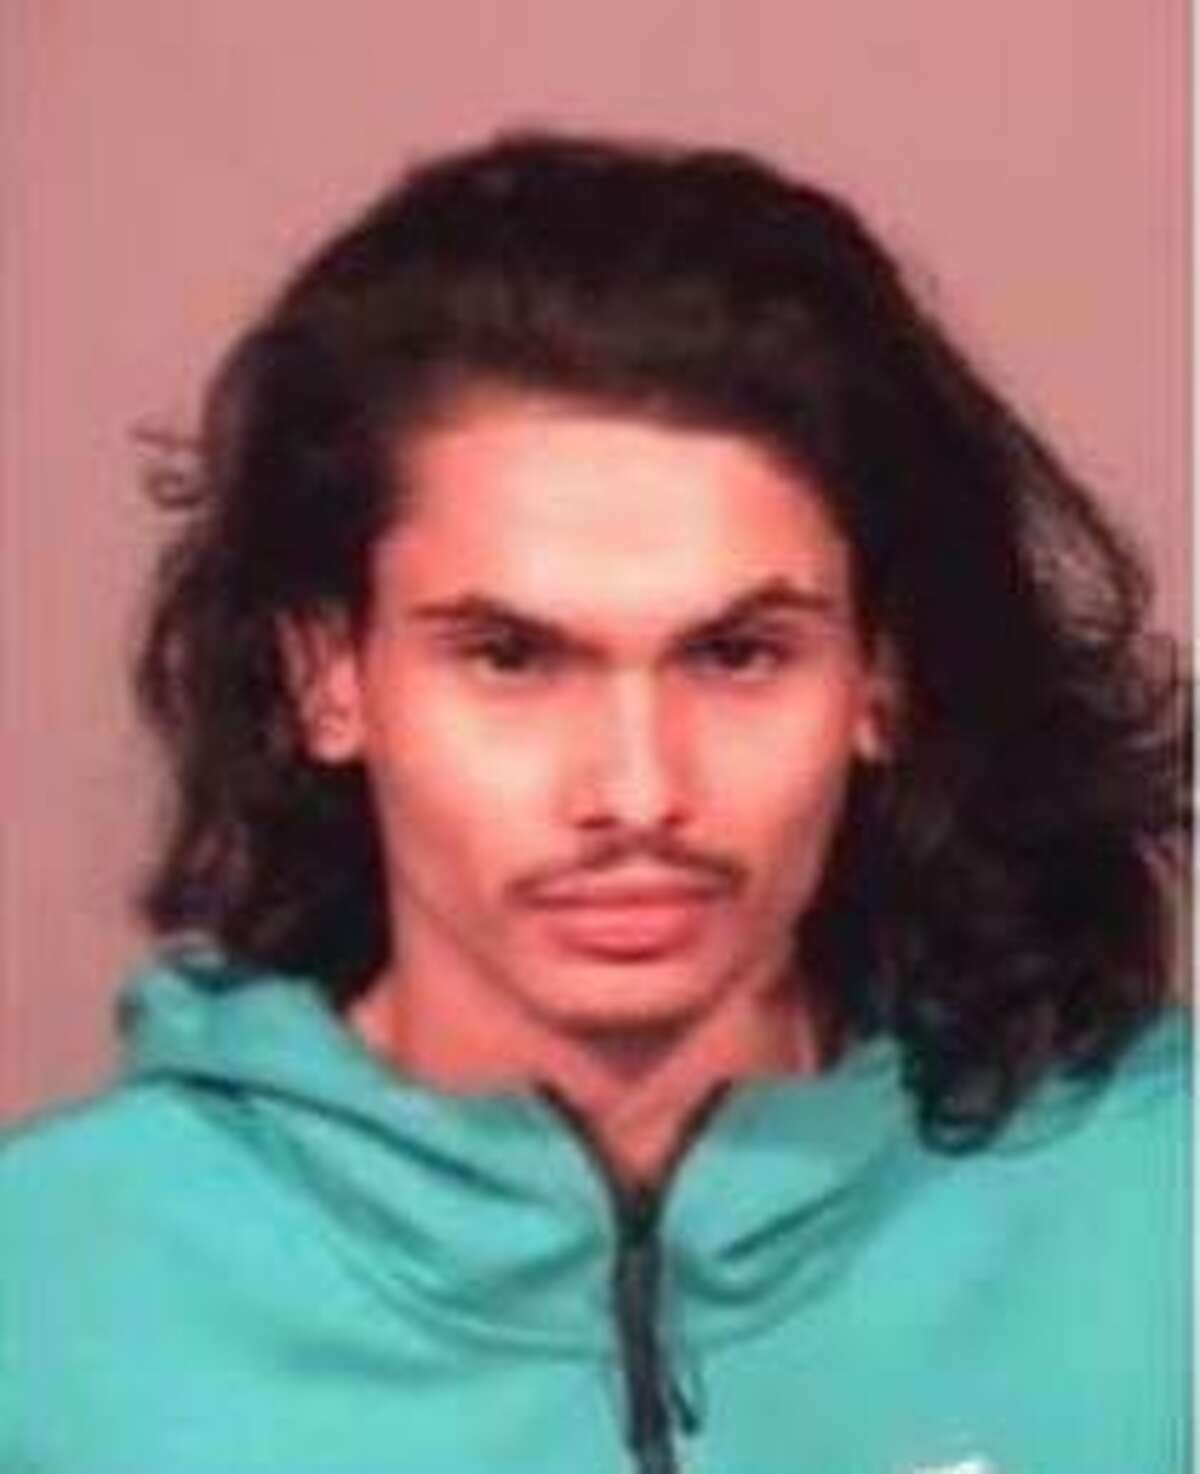 Earlier this year, Joshua Betancourt, 18, was riding in a car with two other people when allegedly he shot them, the Meriden Police Department said Thursday.